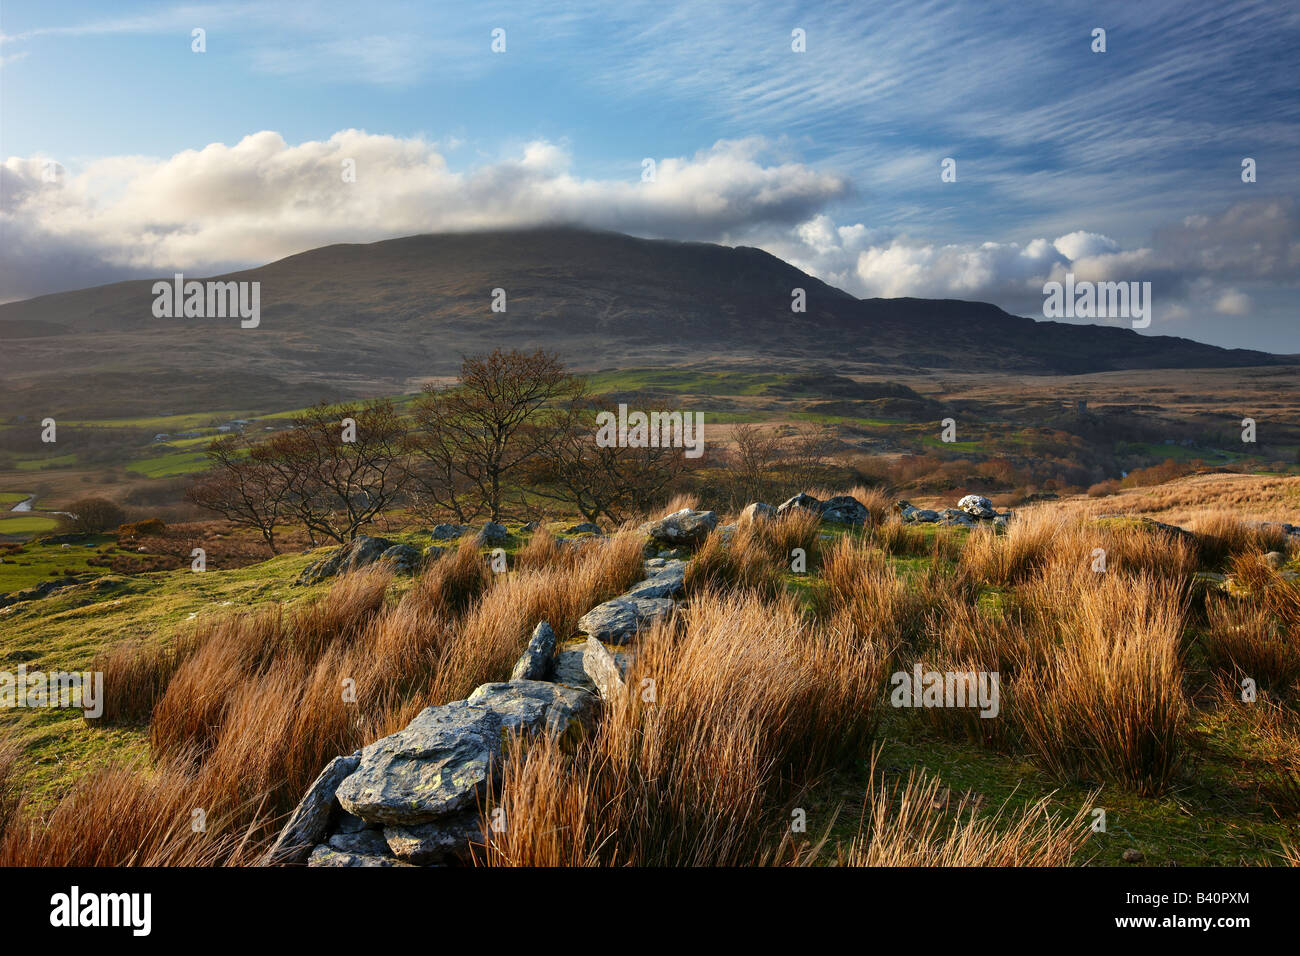 a stone wall above the Glyn Lledr near Dolwyddelan with Moel Siabod beyond, Snowdonia National Park, North Wales, - Stock Image